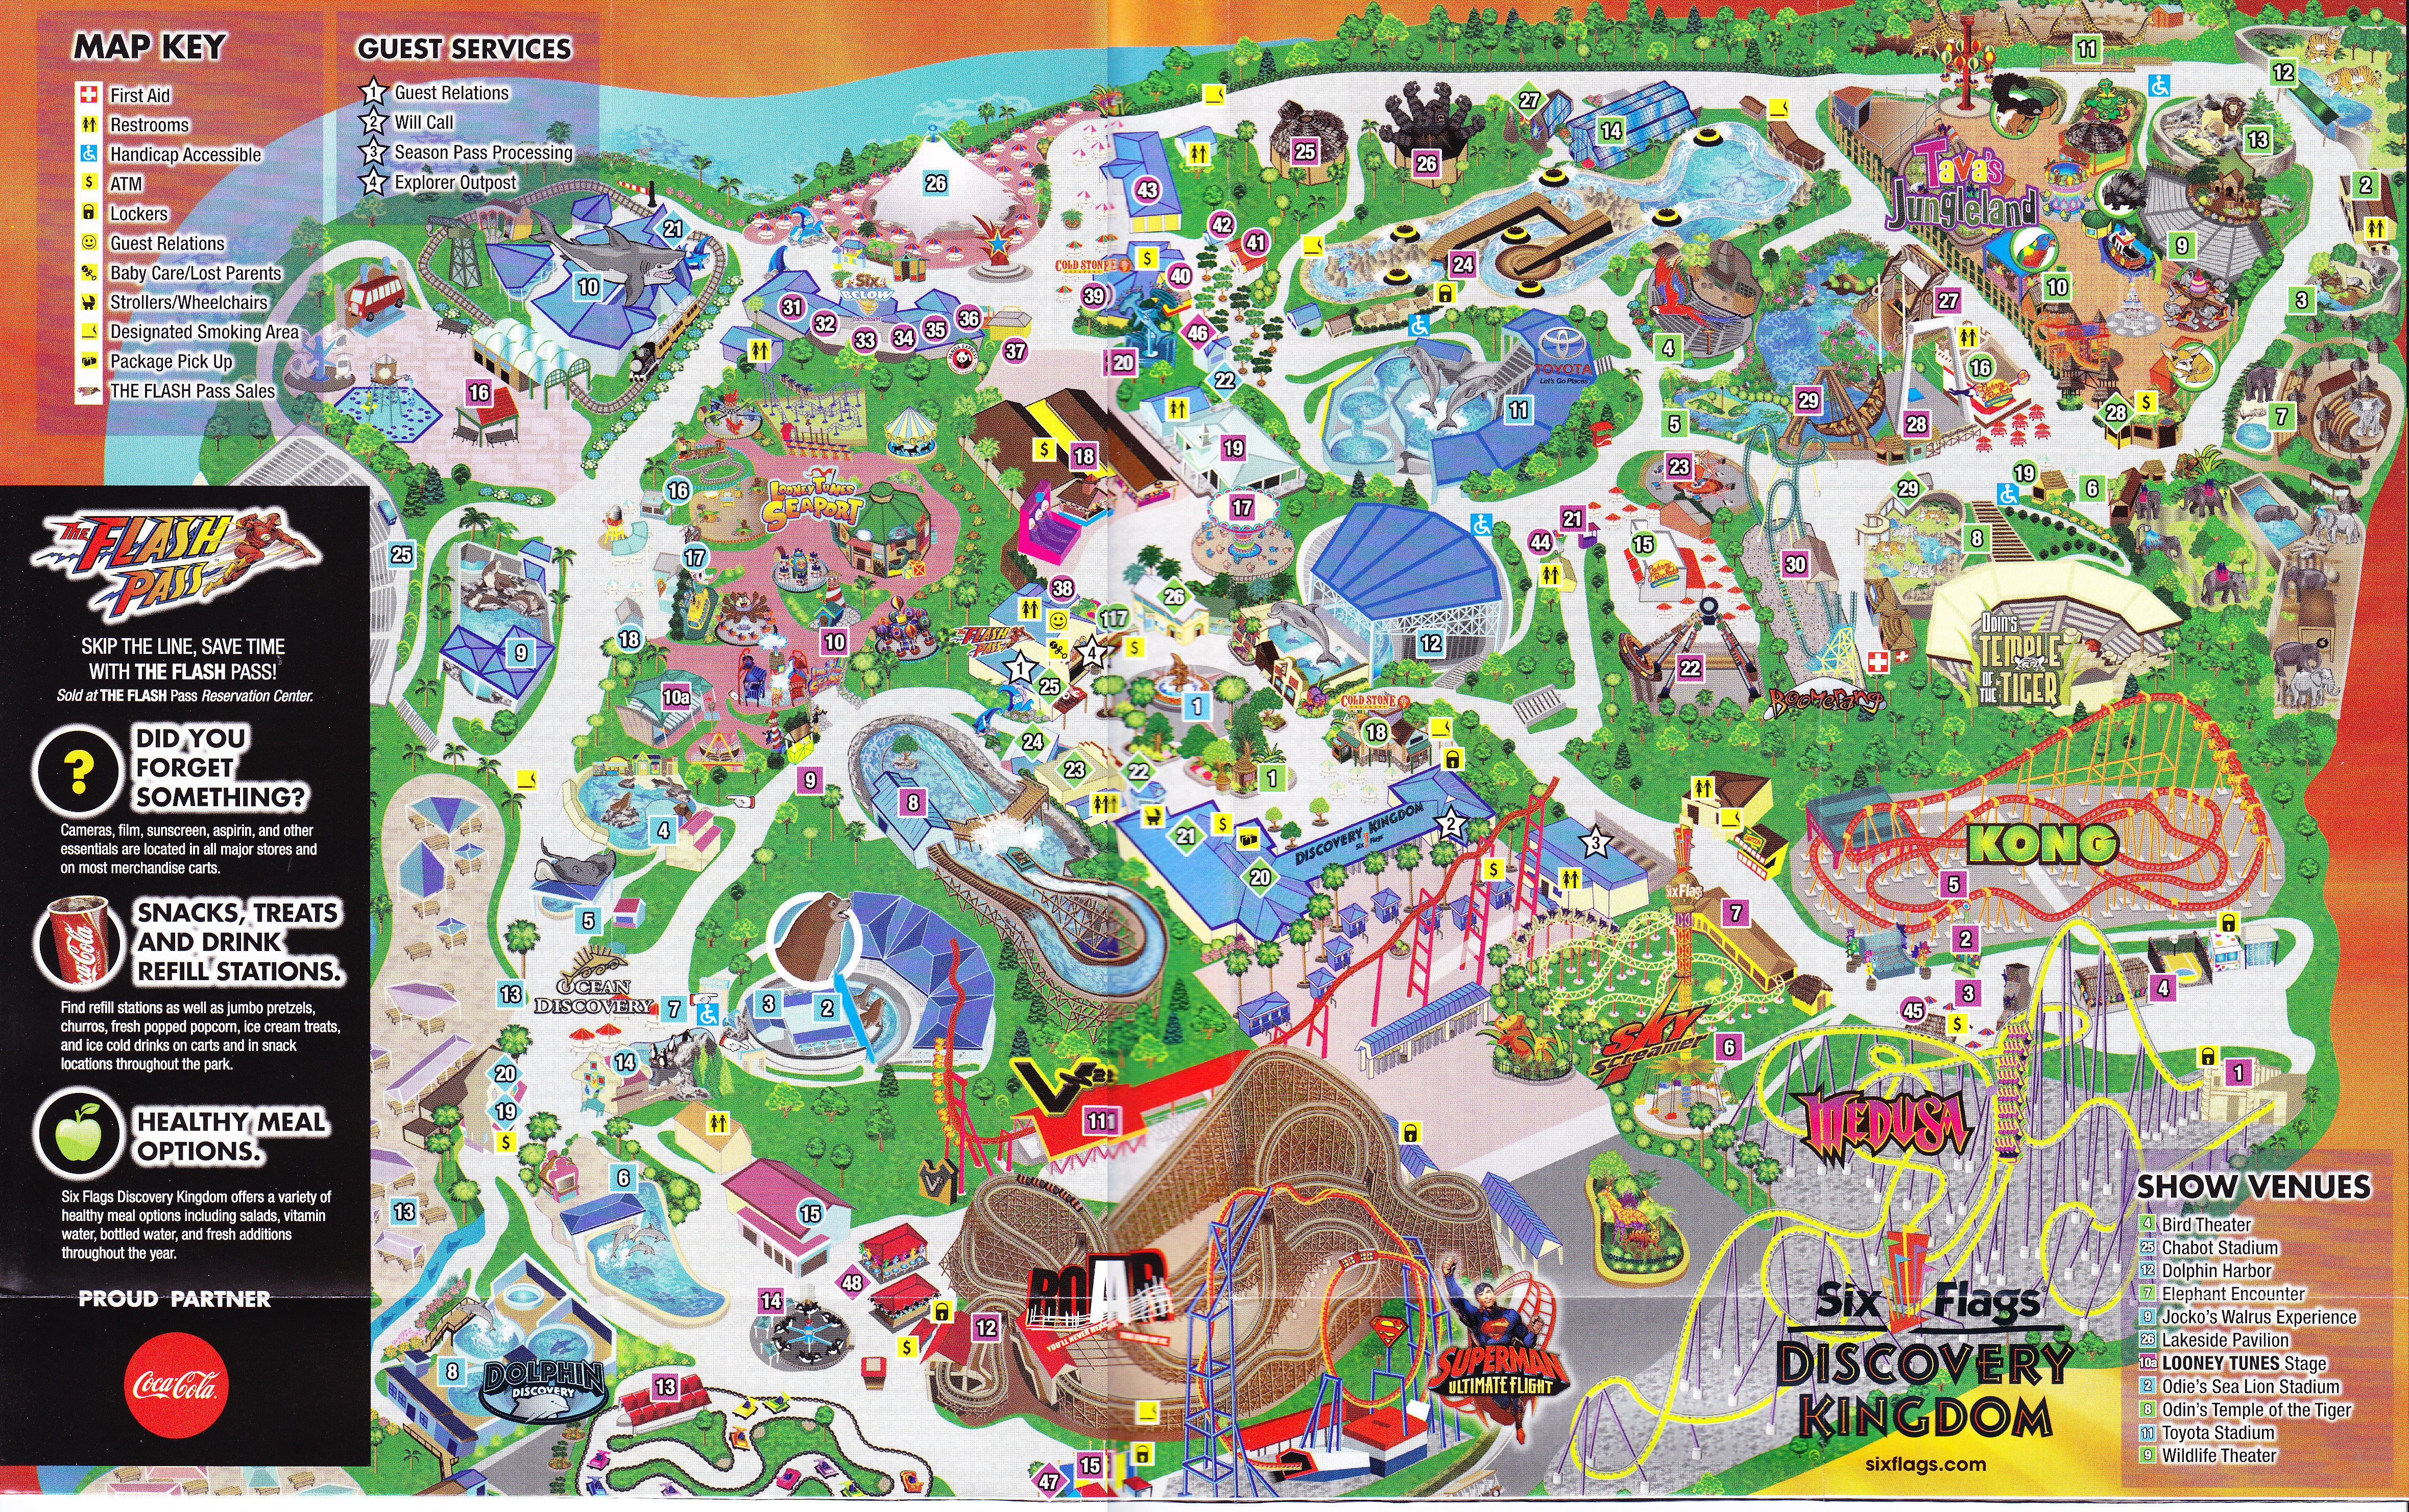 six flags discovery kingdom 2013 park map